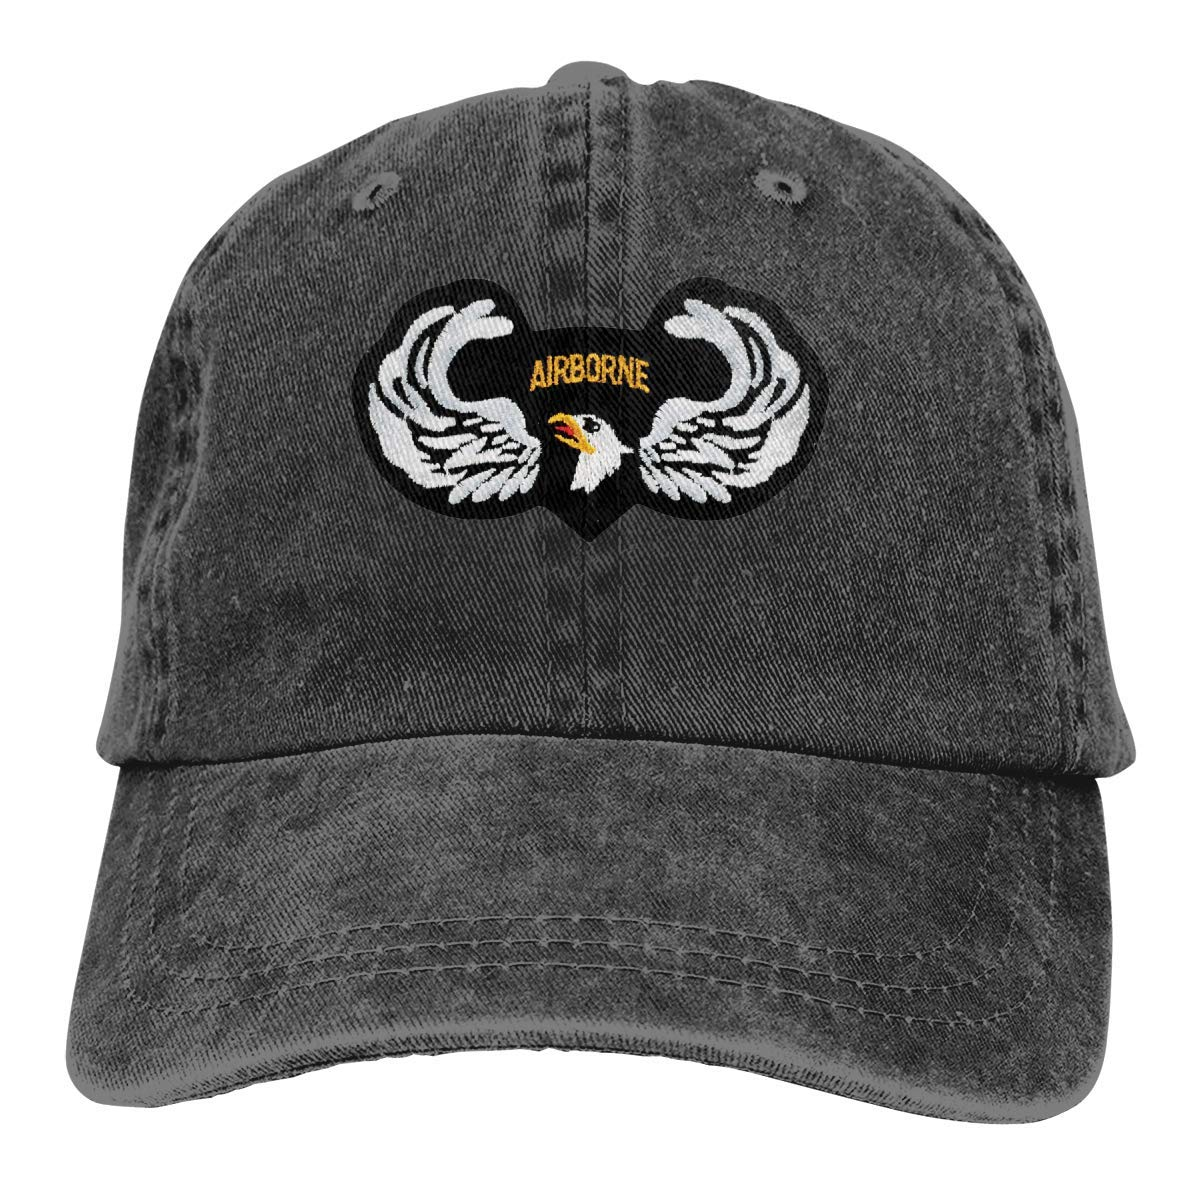 shyly KERLANDER 101ST Airborne Wings Patch Embroidery Adjustable Washed Twill Baseball Cap Dad Hat